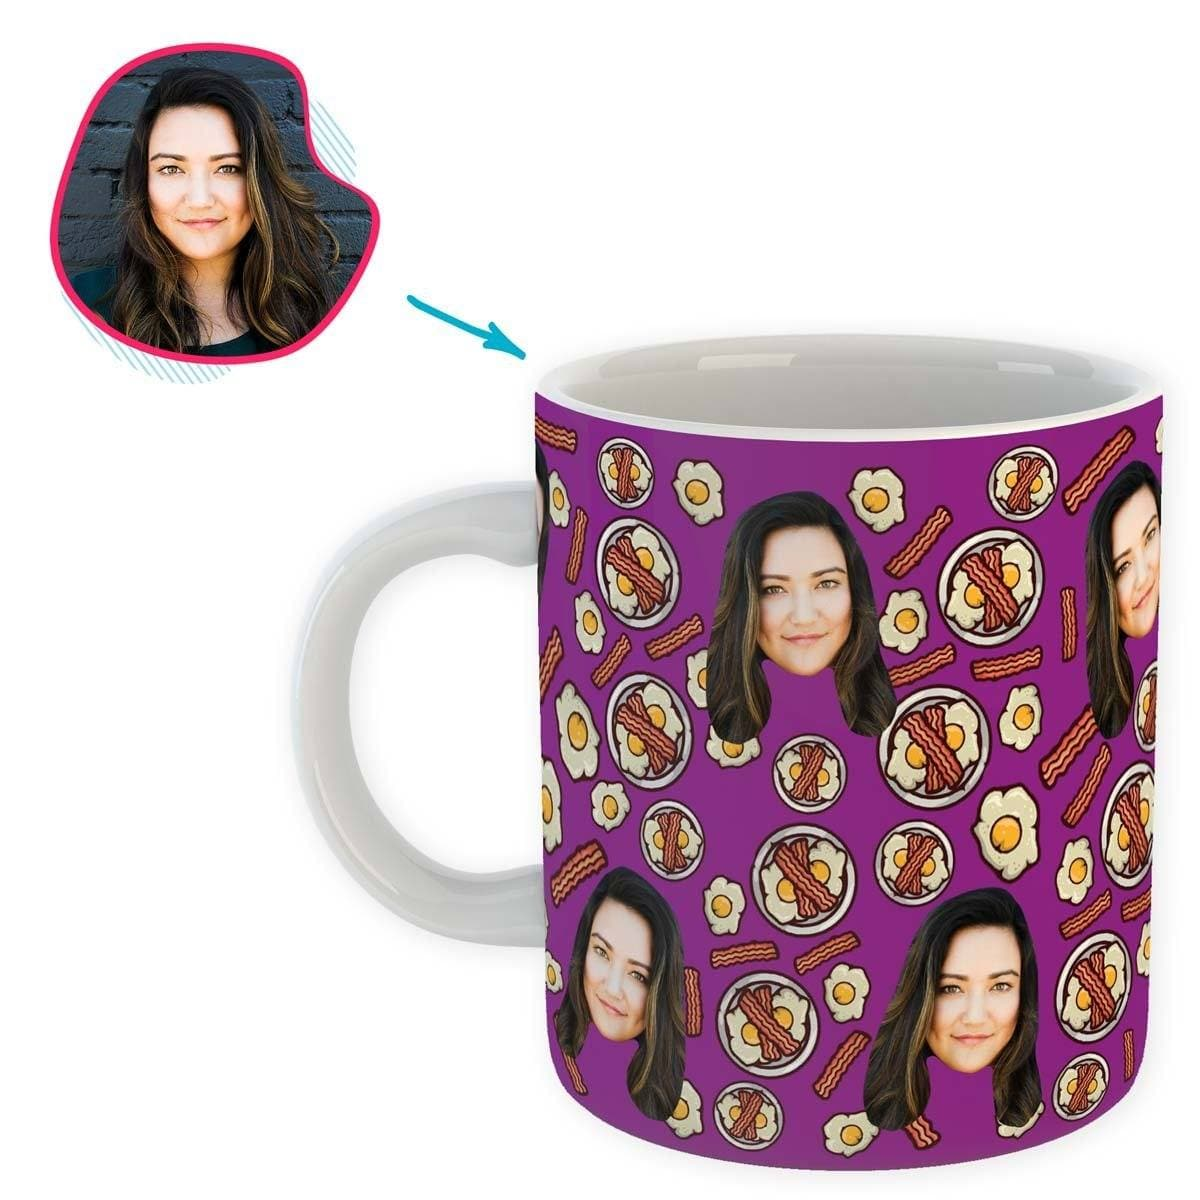 purple Bacon and Eggs mug personalized with photo of face printed on it